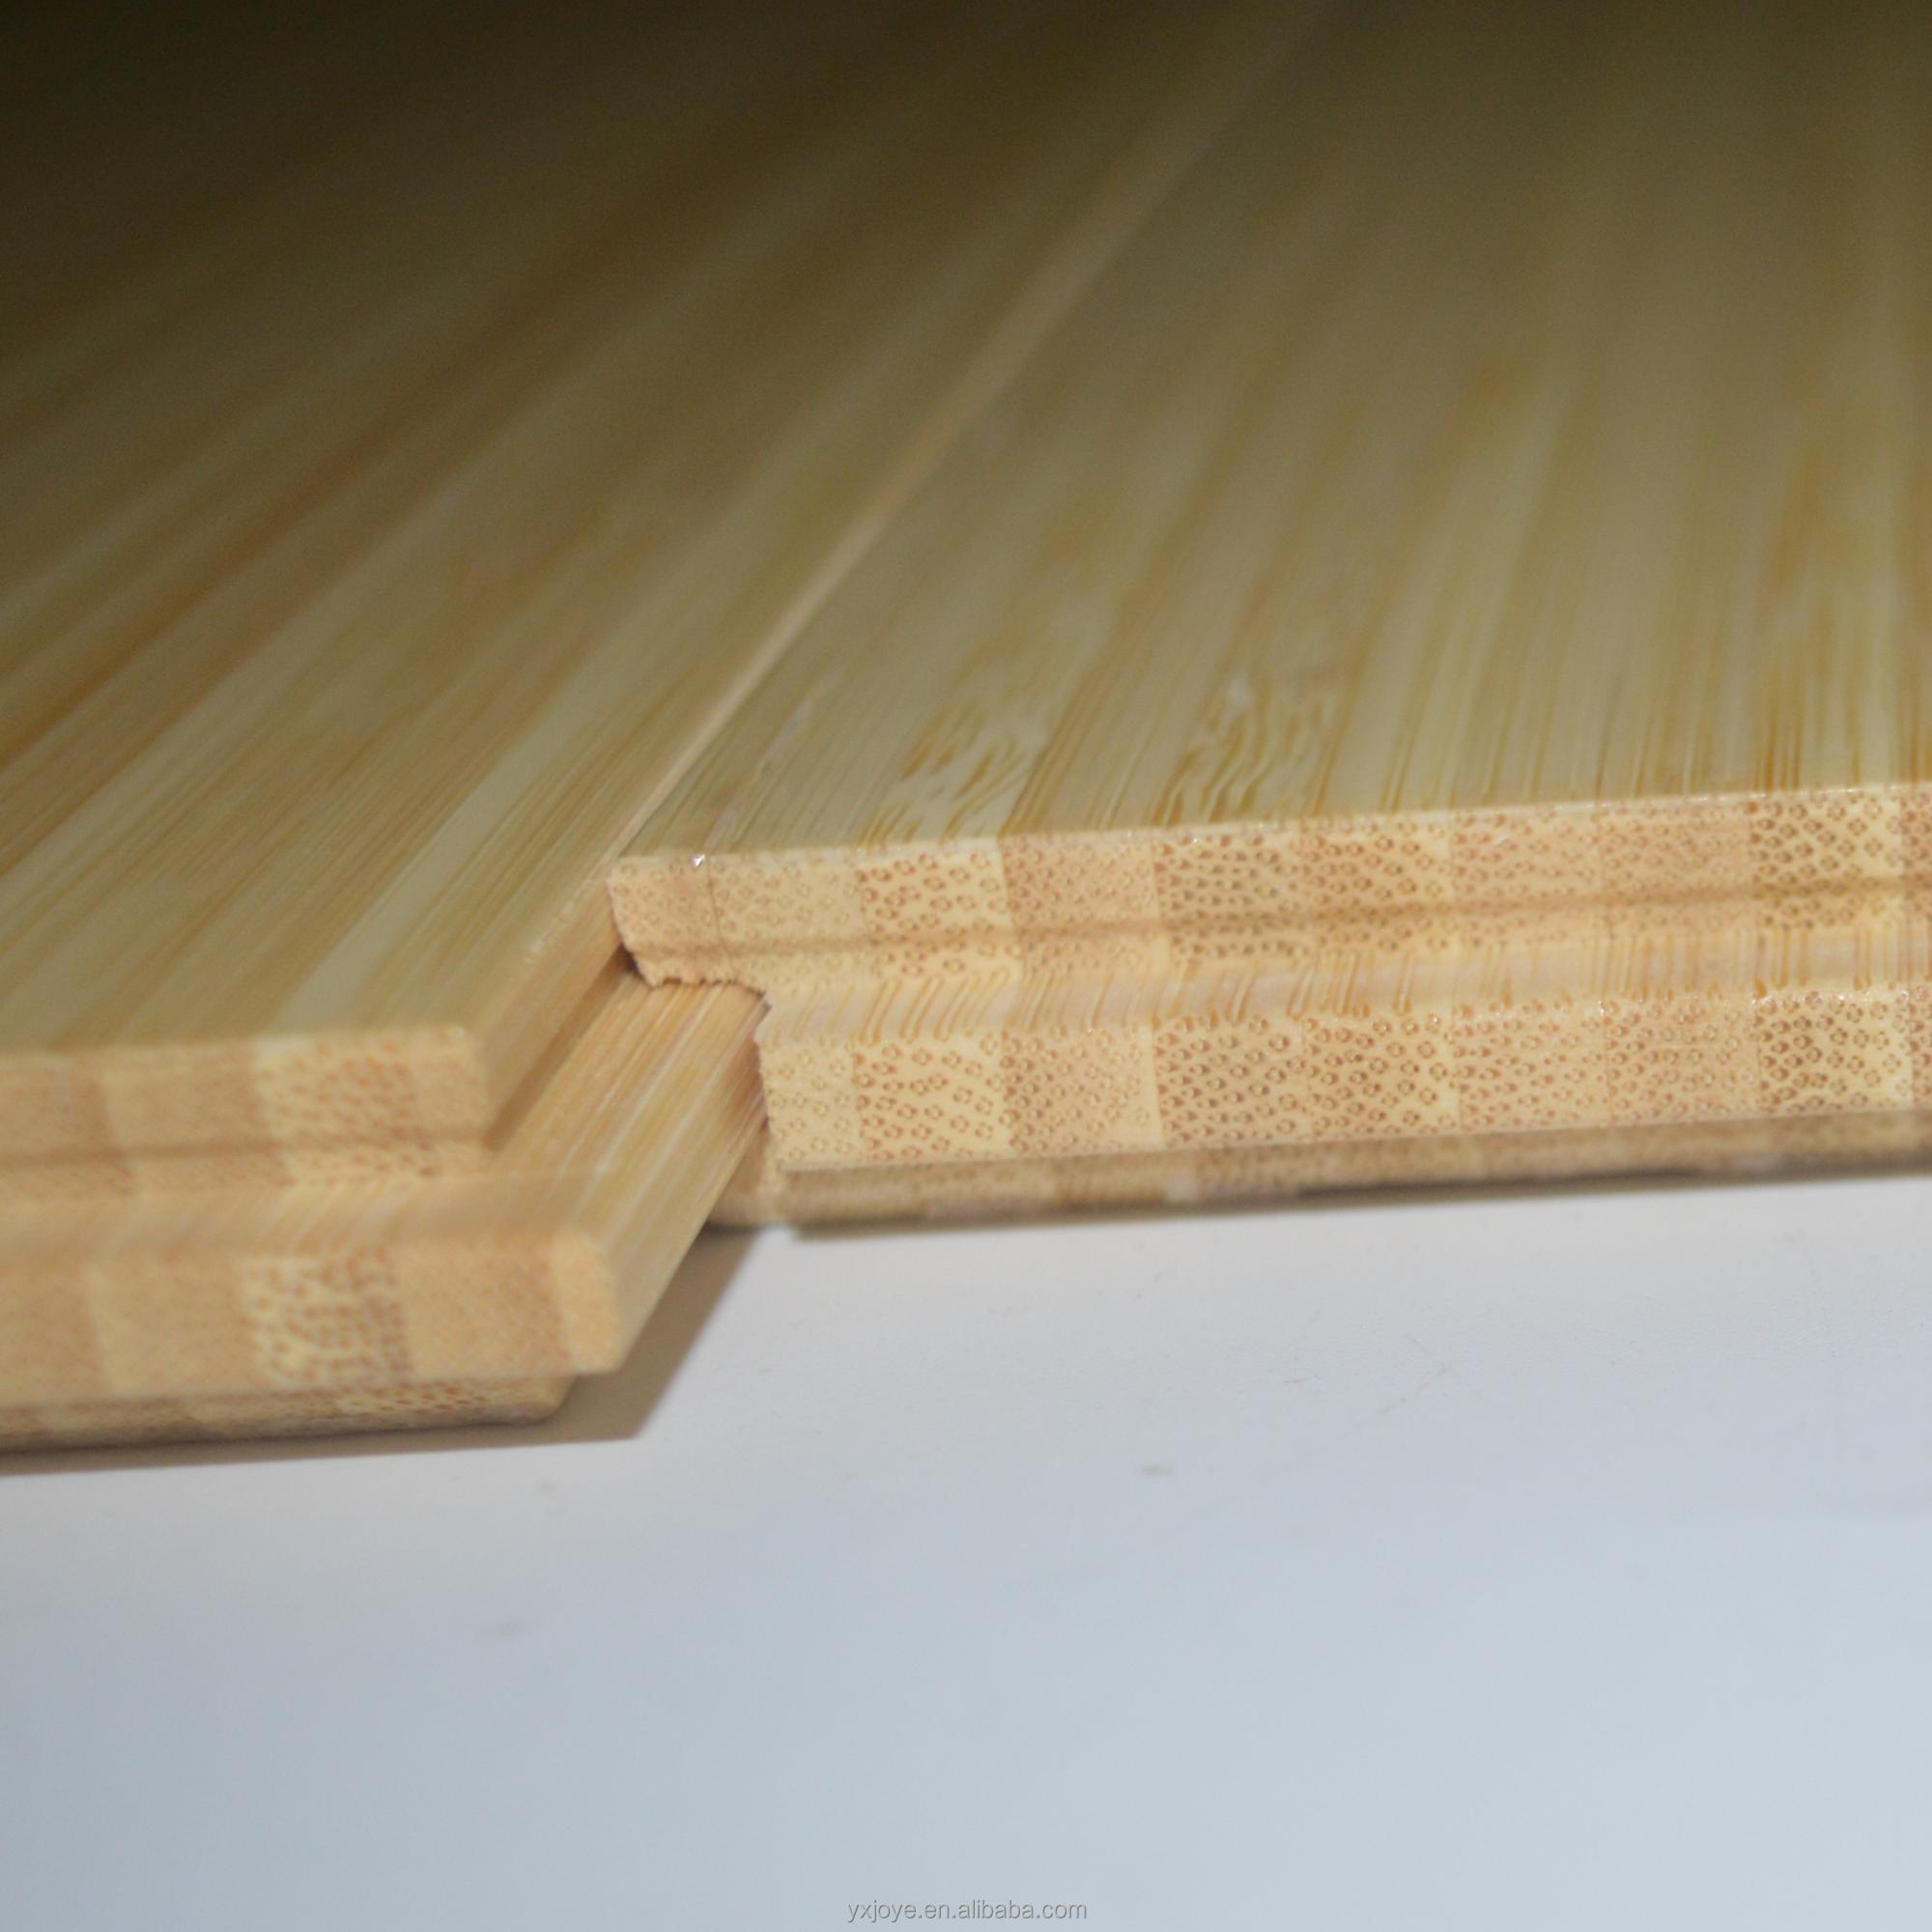 Bamboo Parquet Flooring, Bamboo Parquet Flooring Suppliers And Manufacturers At